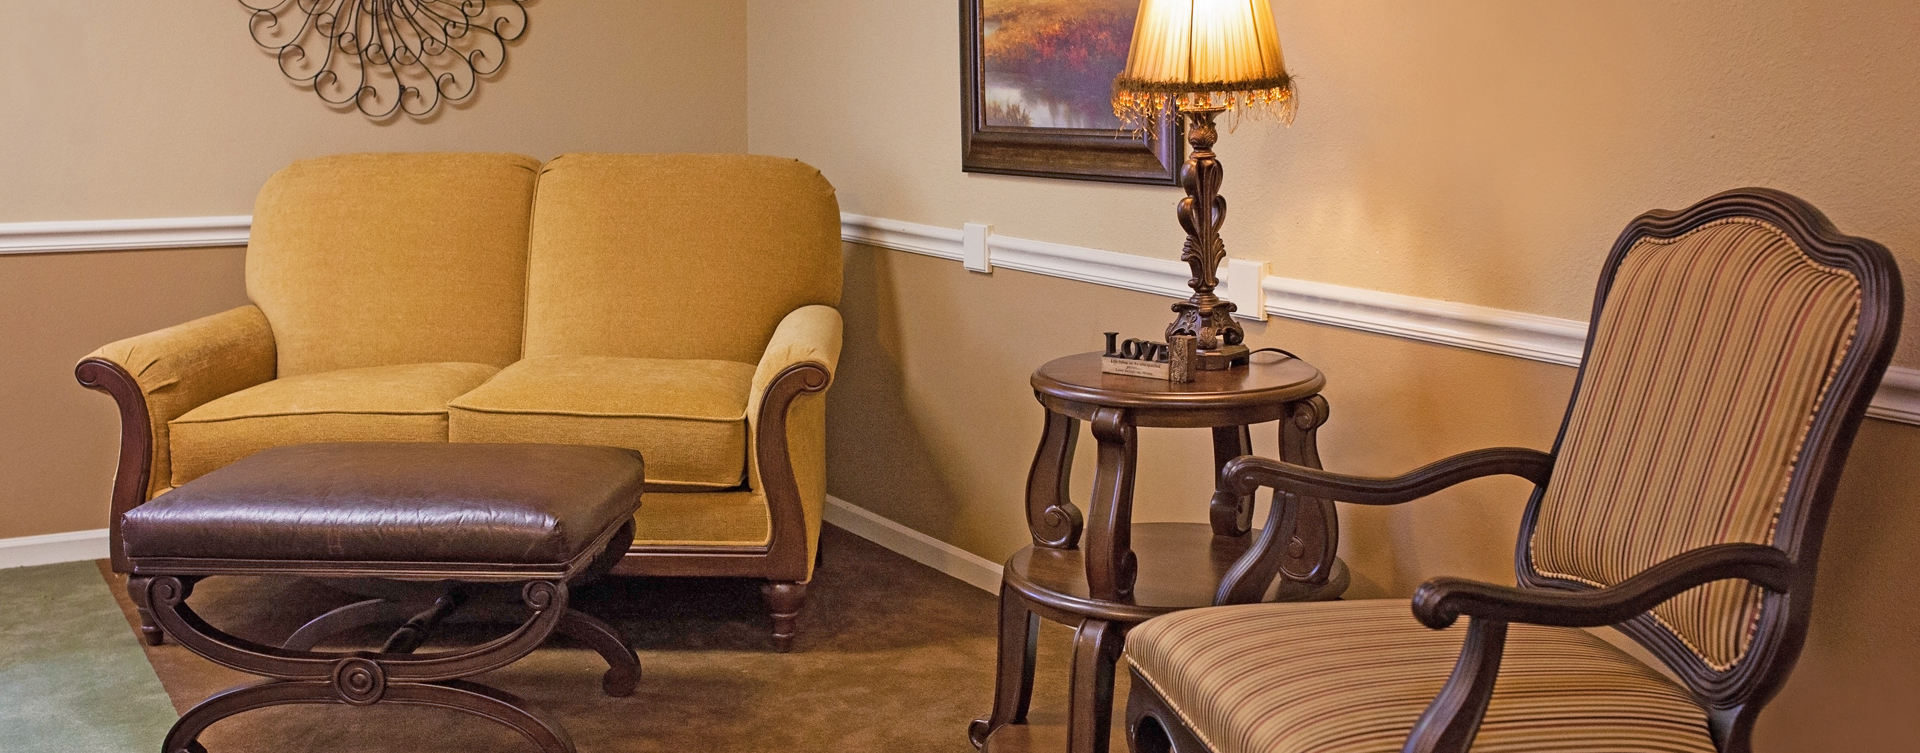 Enjoy a good snooze in the sitting area at Bickford of Cedar Falls